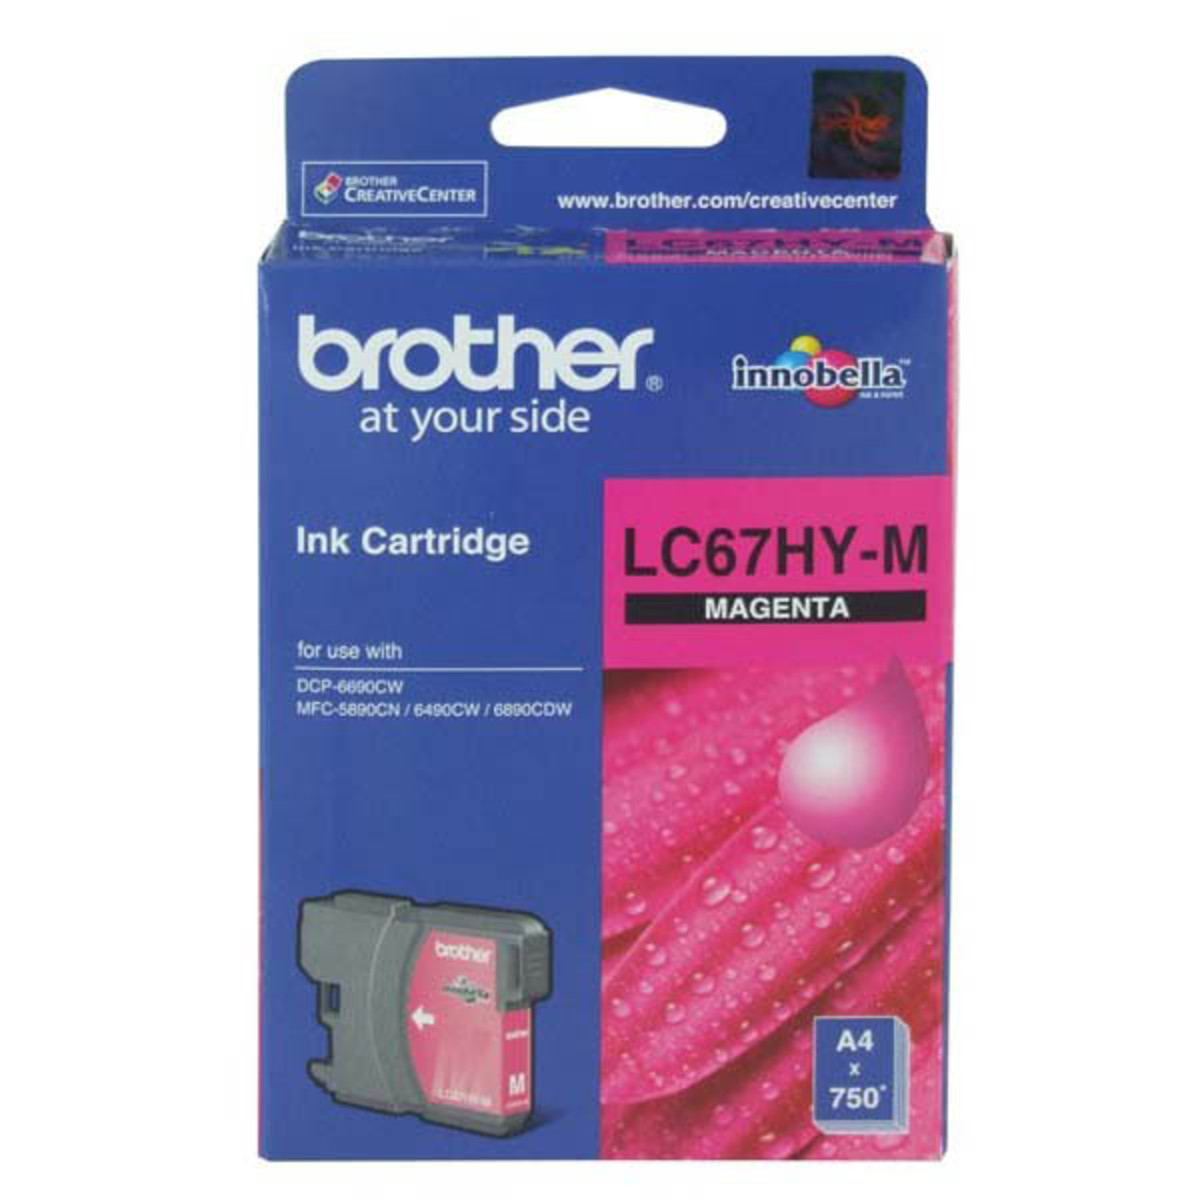 Brother LC-67HY Magenta Ink Cartridge - High Yield